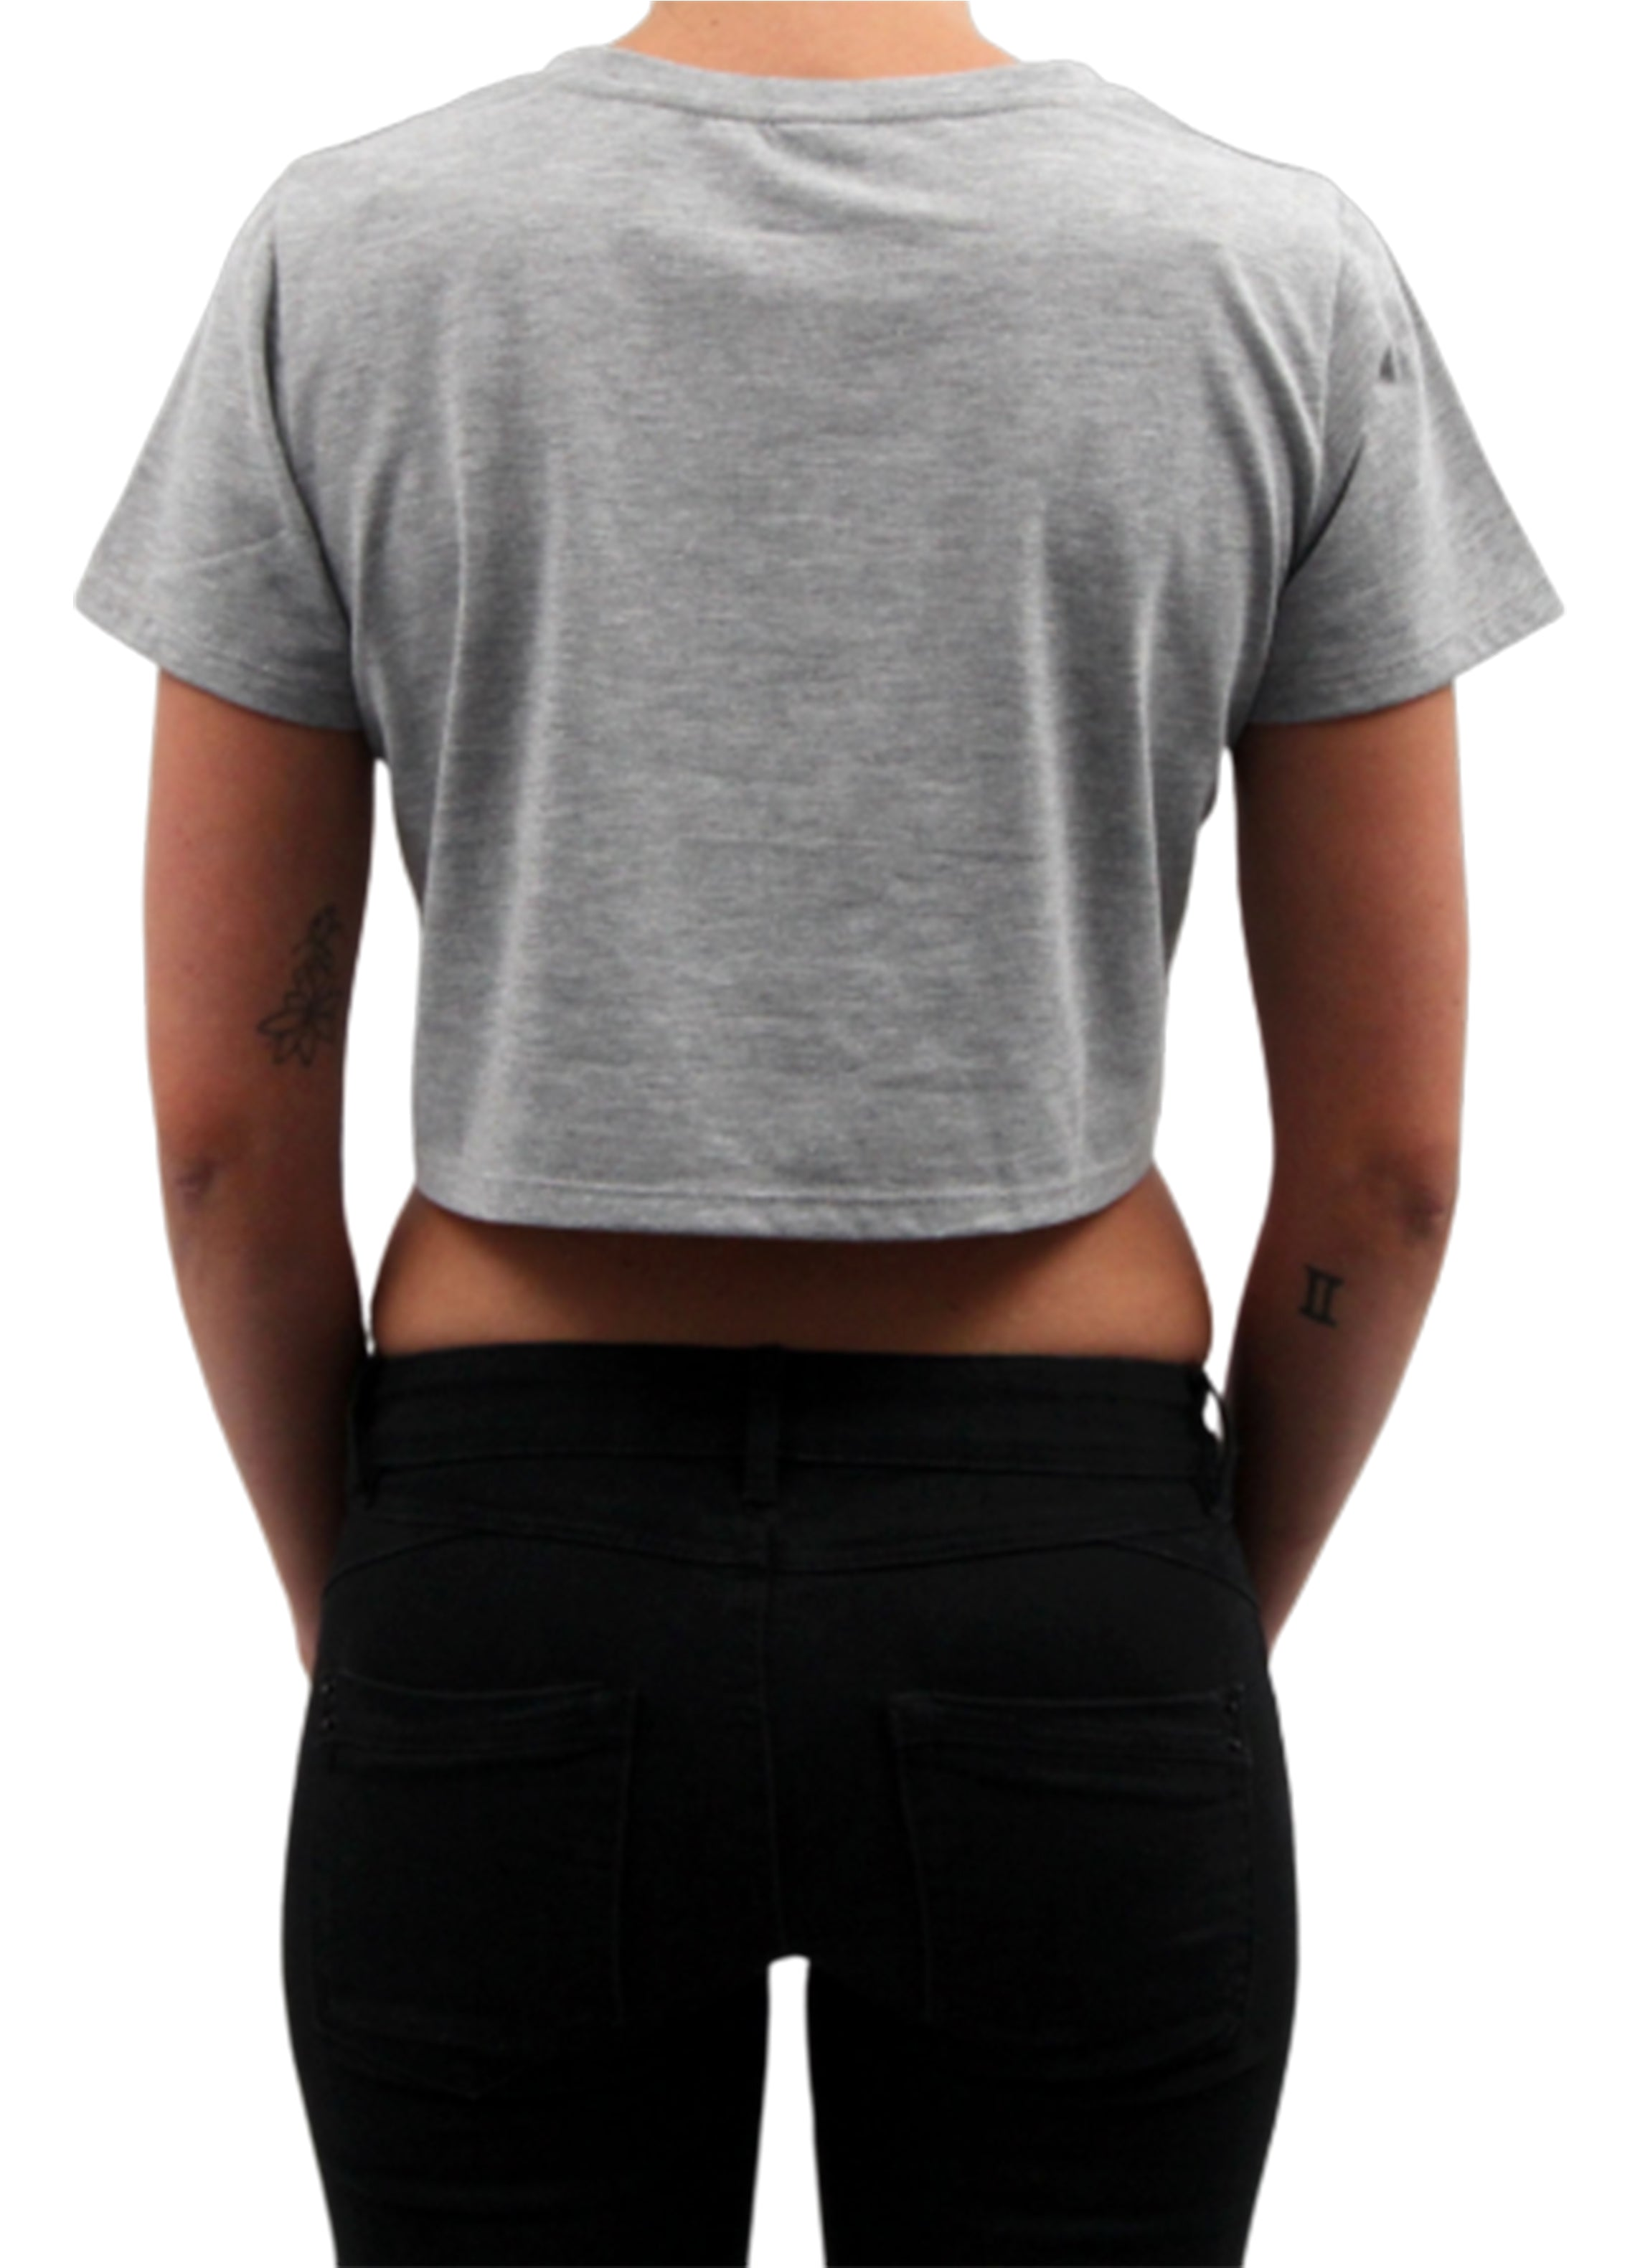 Frauen Crop Top Basic Grau